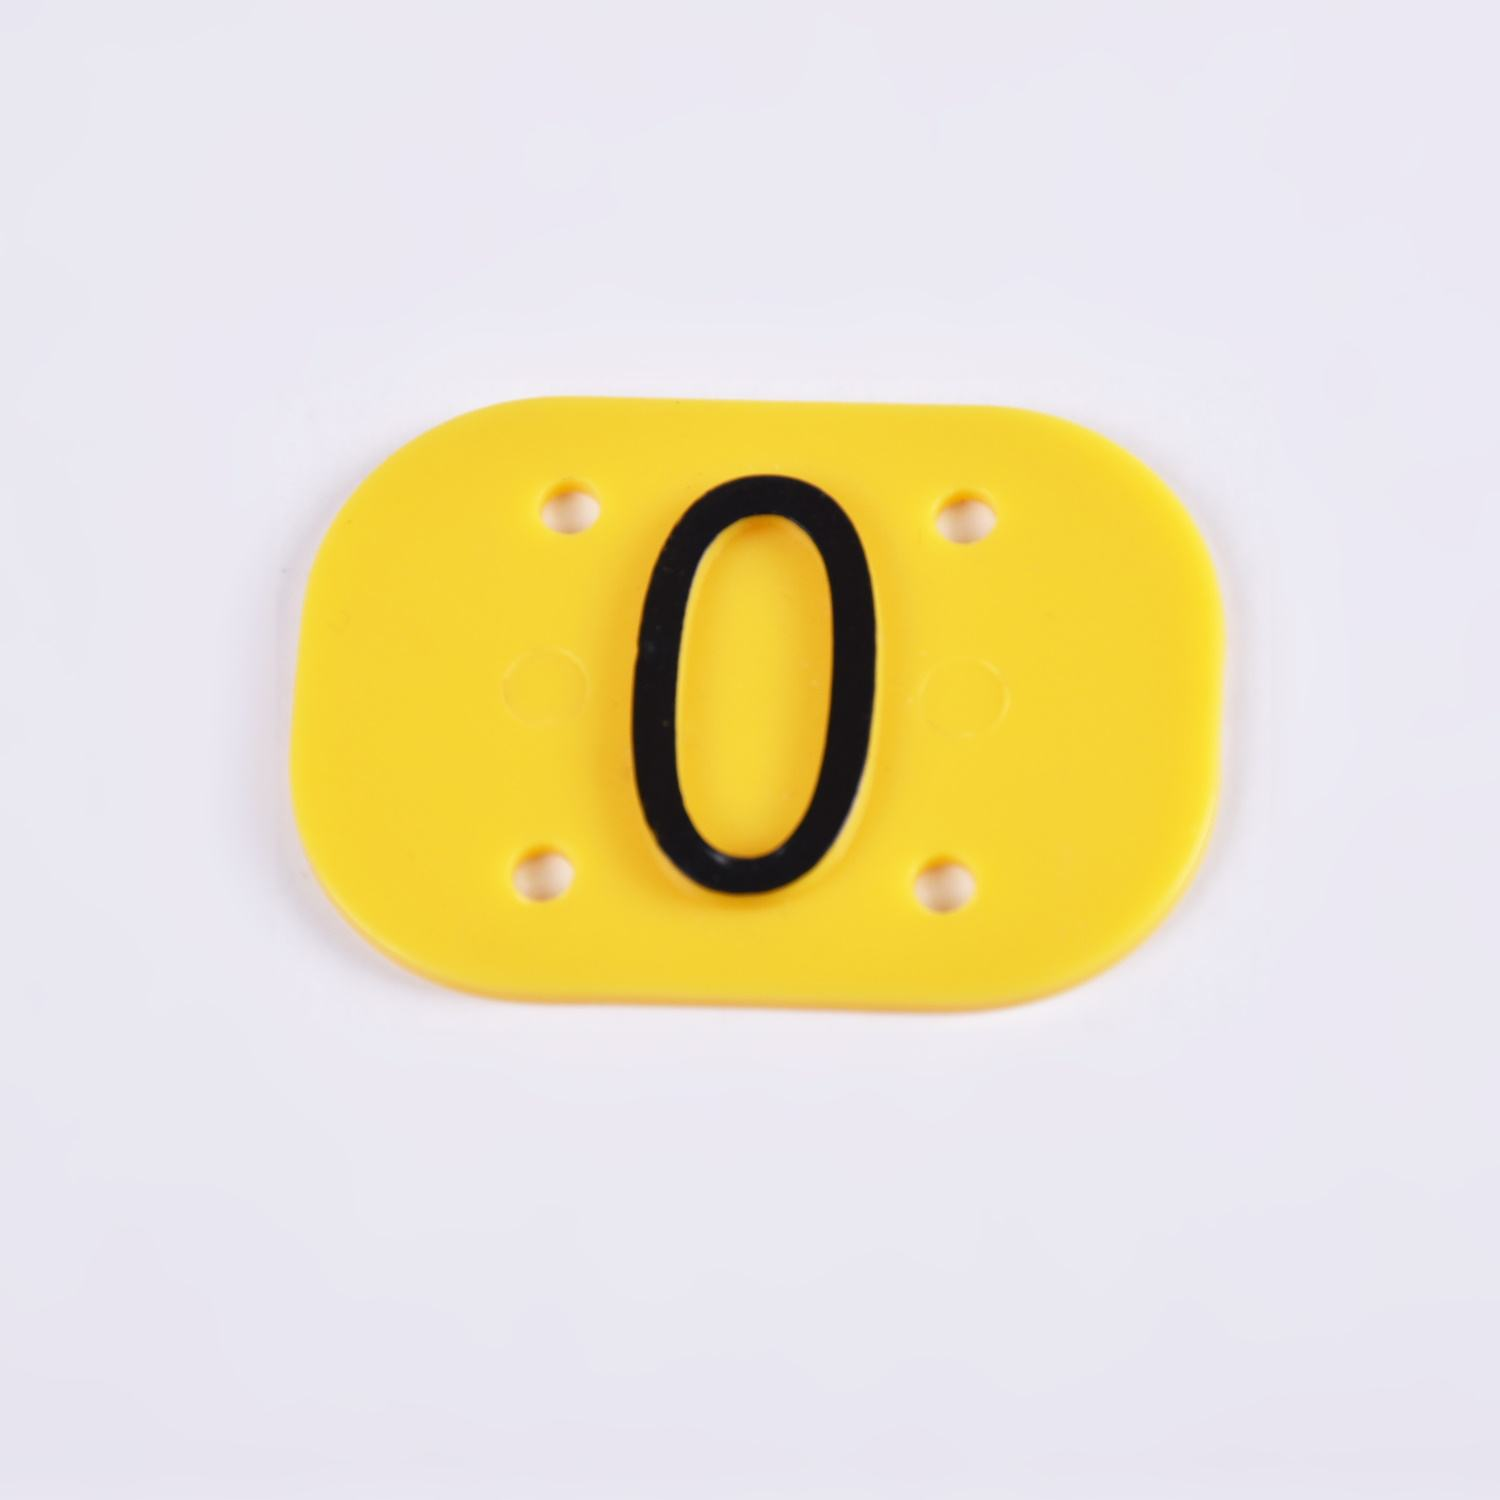 Commercial Kitchen Take Out Box Food Separation Use 3D plastic Identification ID number Key Tags for Takeaway Food